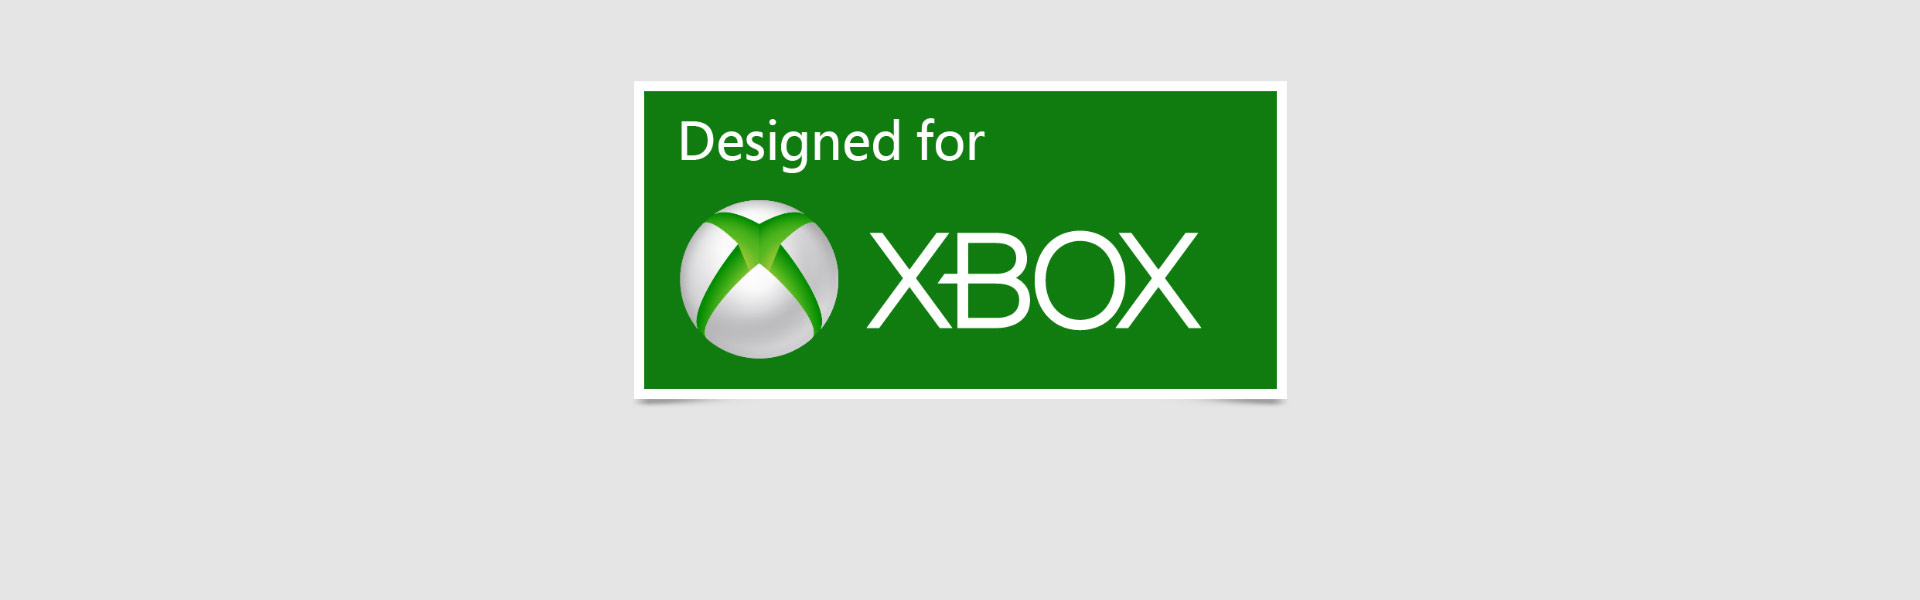 Deisgned for Xbox logo